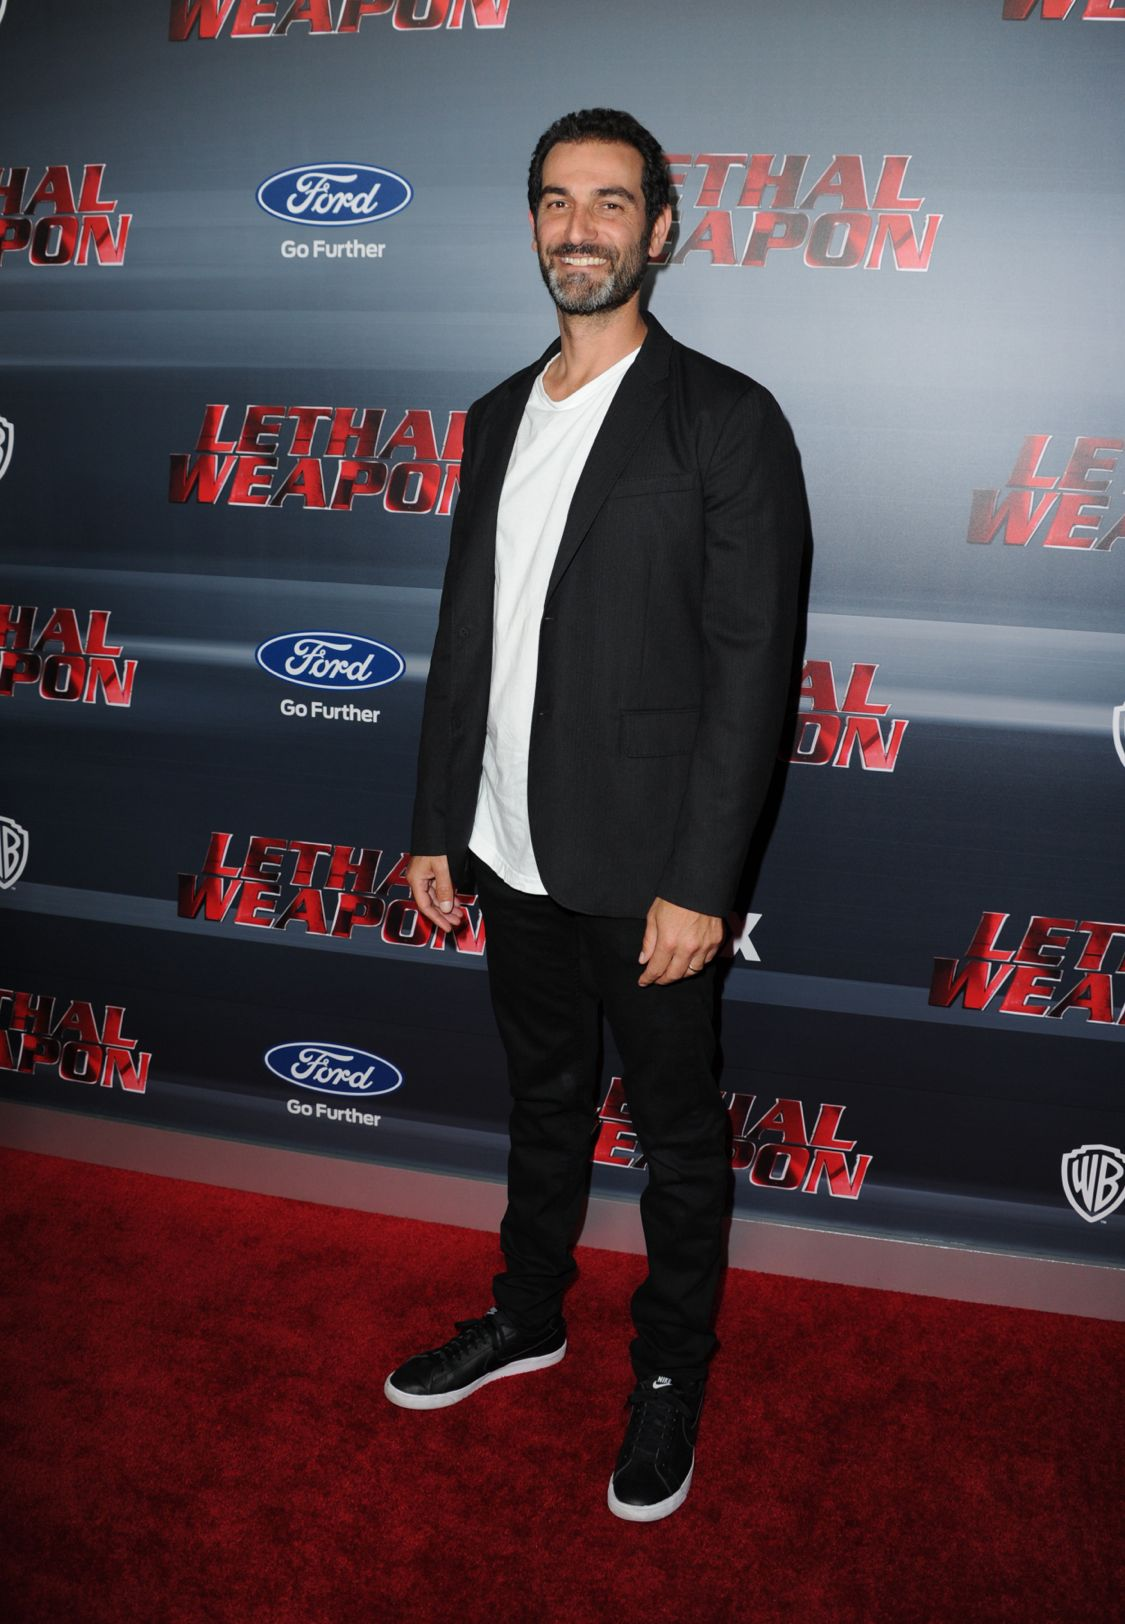 LETHAL WEAPON: Executive Producer Matt Miller celebrates the LETHAL WEAPON premiere party at NeueHouse Hollywood on Monday, Sept. 12, in Los Angeles, CA, sponsored by Ford. LETHAL WEAPON premieres Wednesday, Sept. 21 (8:00-9:00 PM ET/PT) on FOX. ©2016 Fox Broadcasting Co. CR: Frank Micelotta/FOX